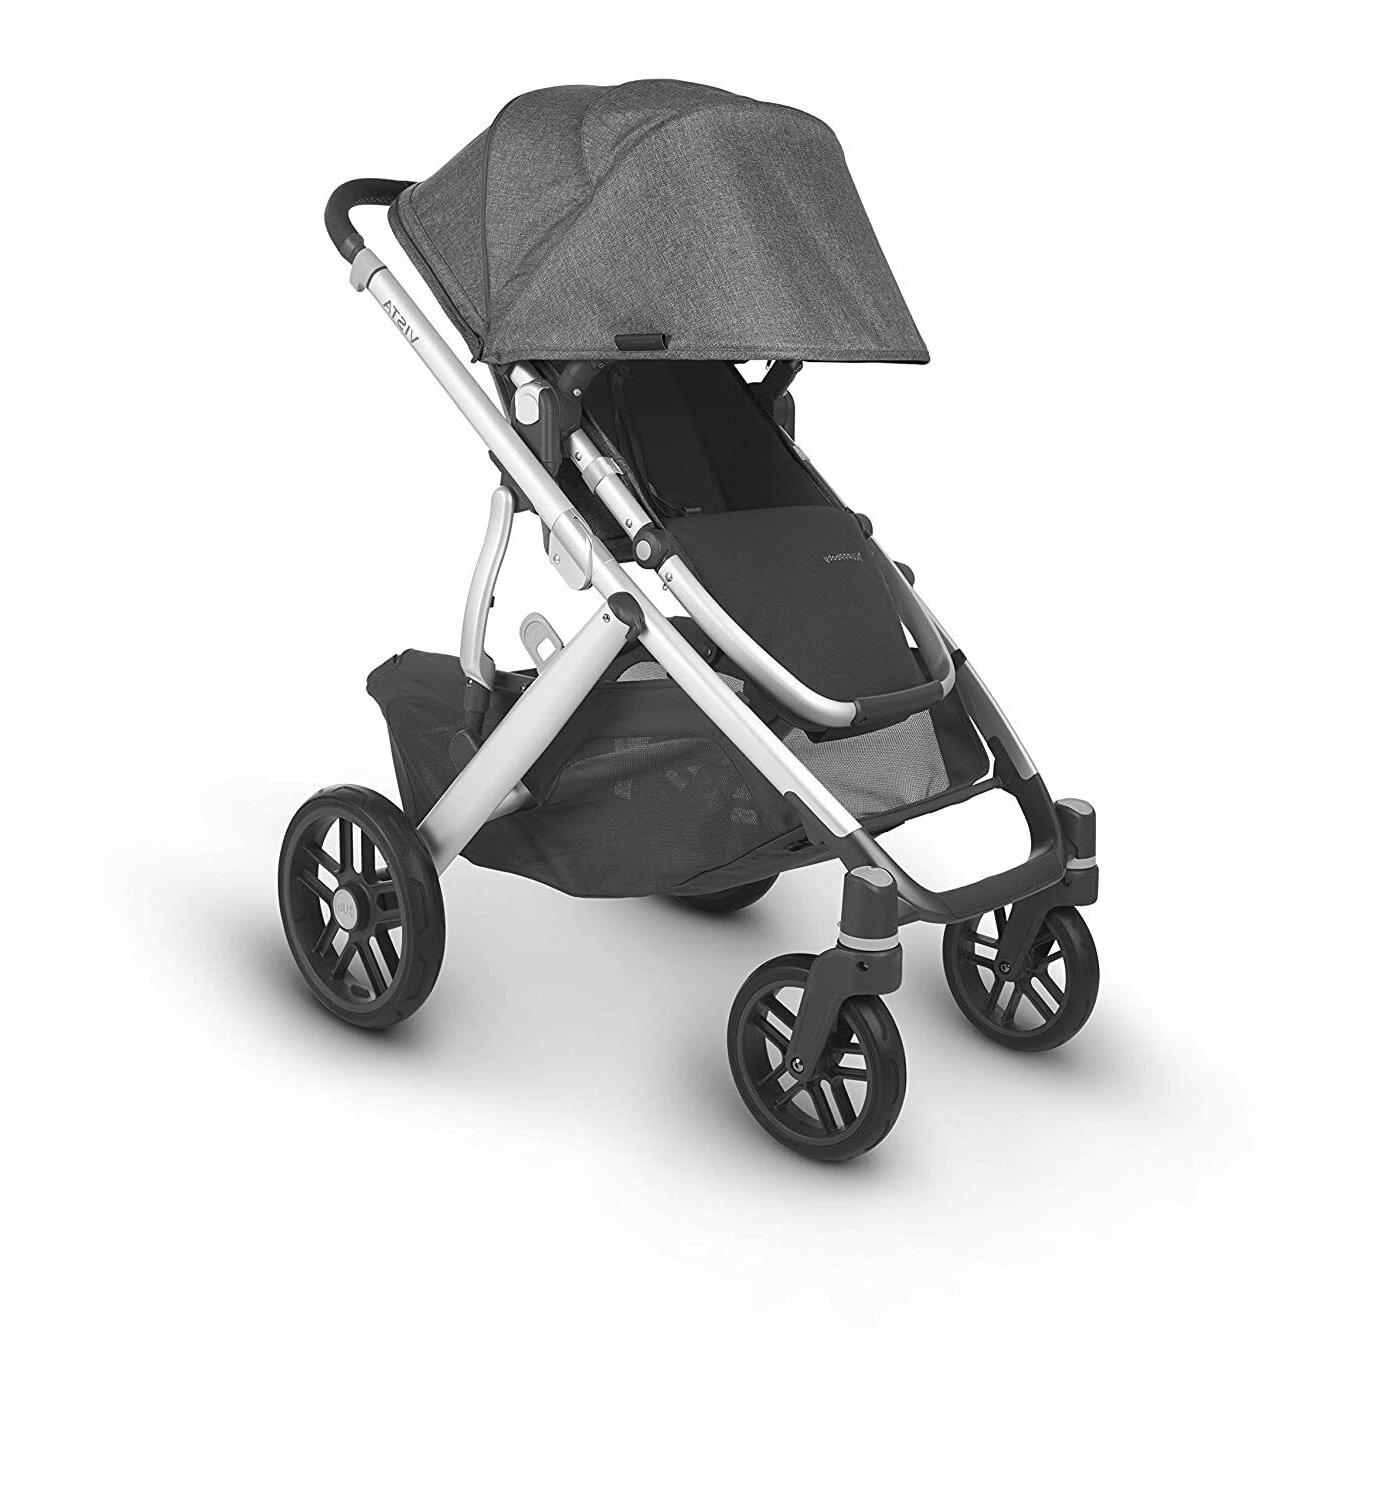 New UPPAbaby V2 with Bassinet Model